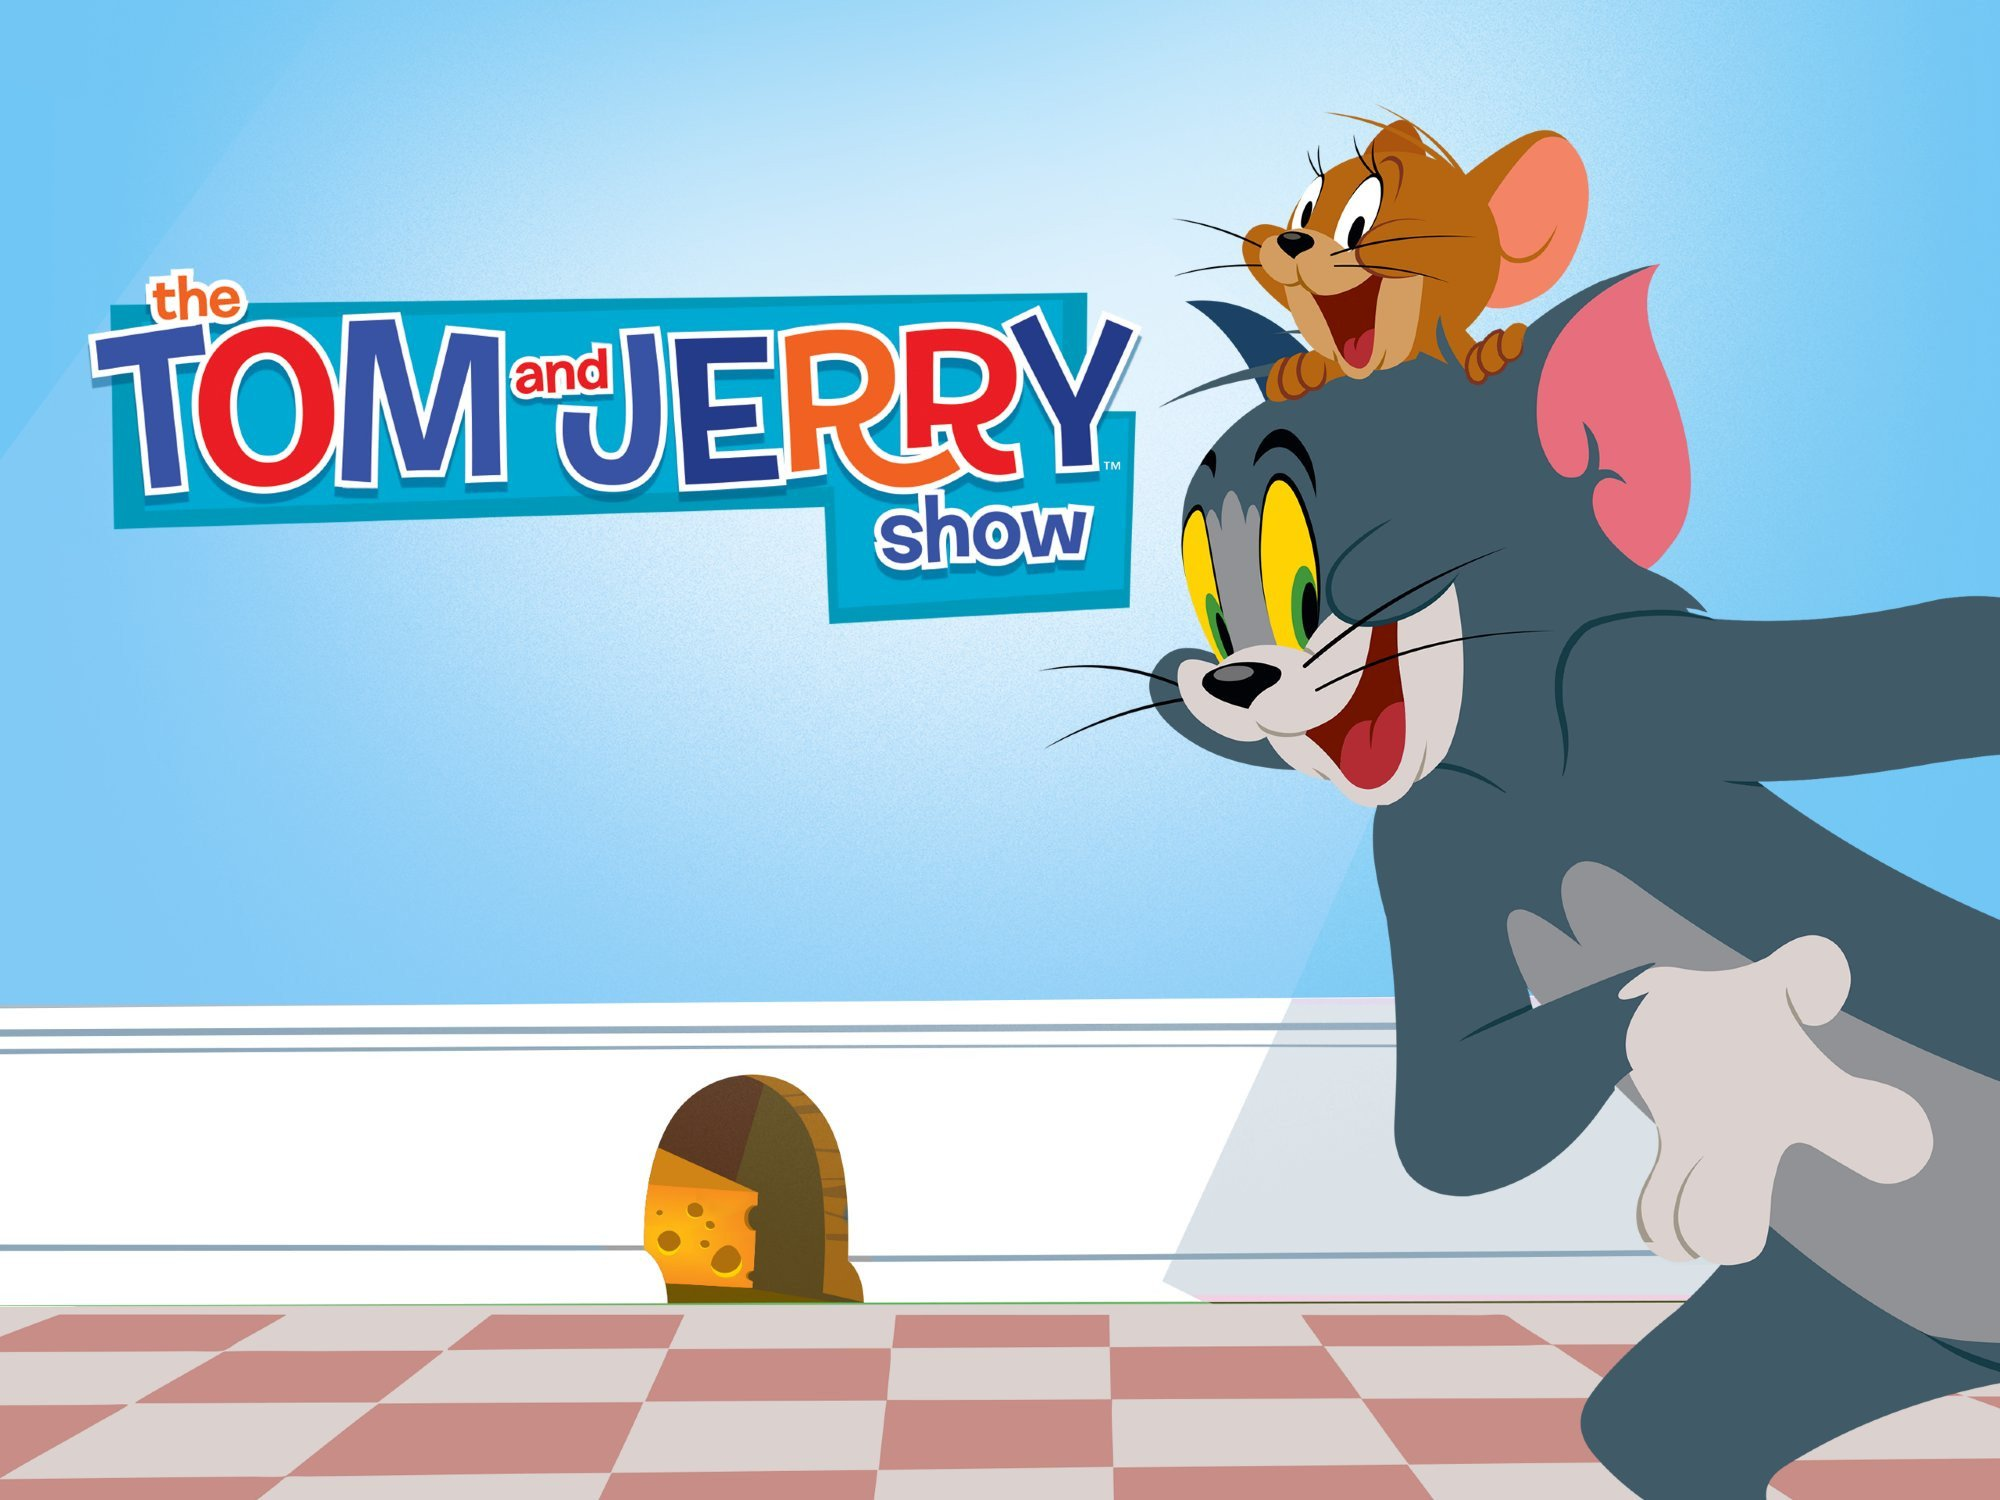 Amazon.com: Watch The Tom and Jerry Show: Season 2 | Prime Video